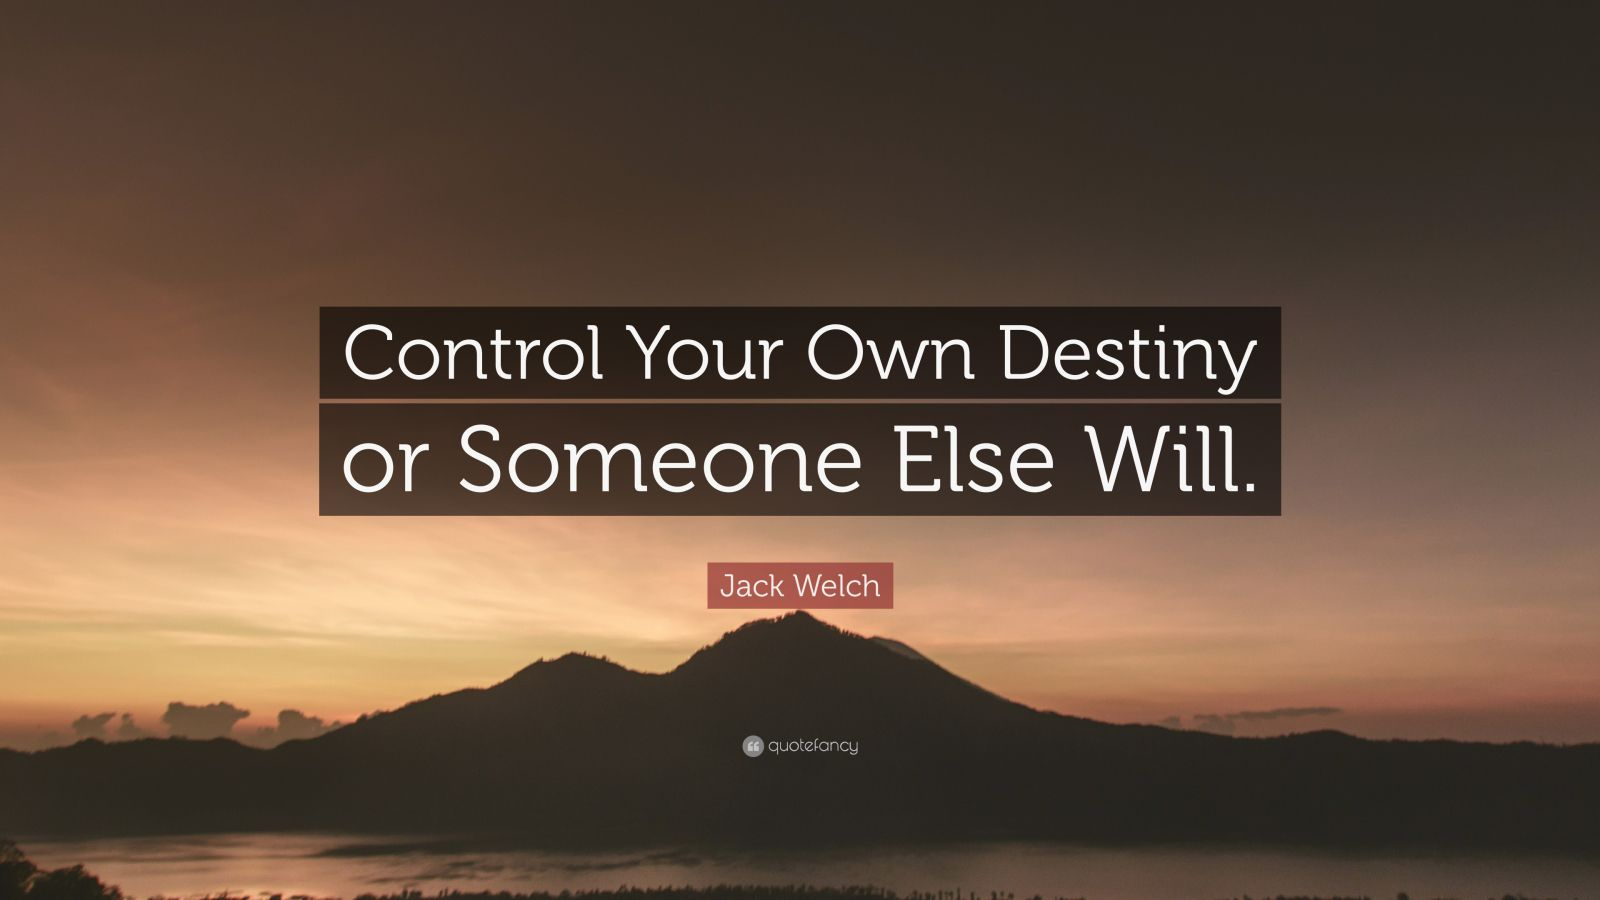 Snap Control Your Own Destiny Or Someone Else Will Jack Welch